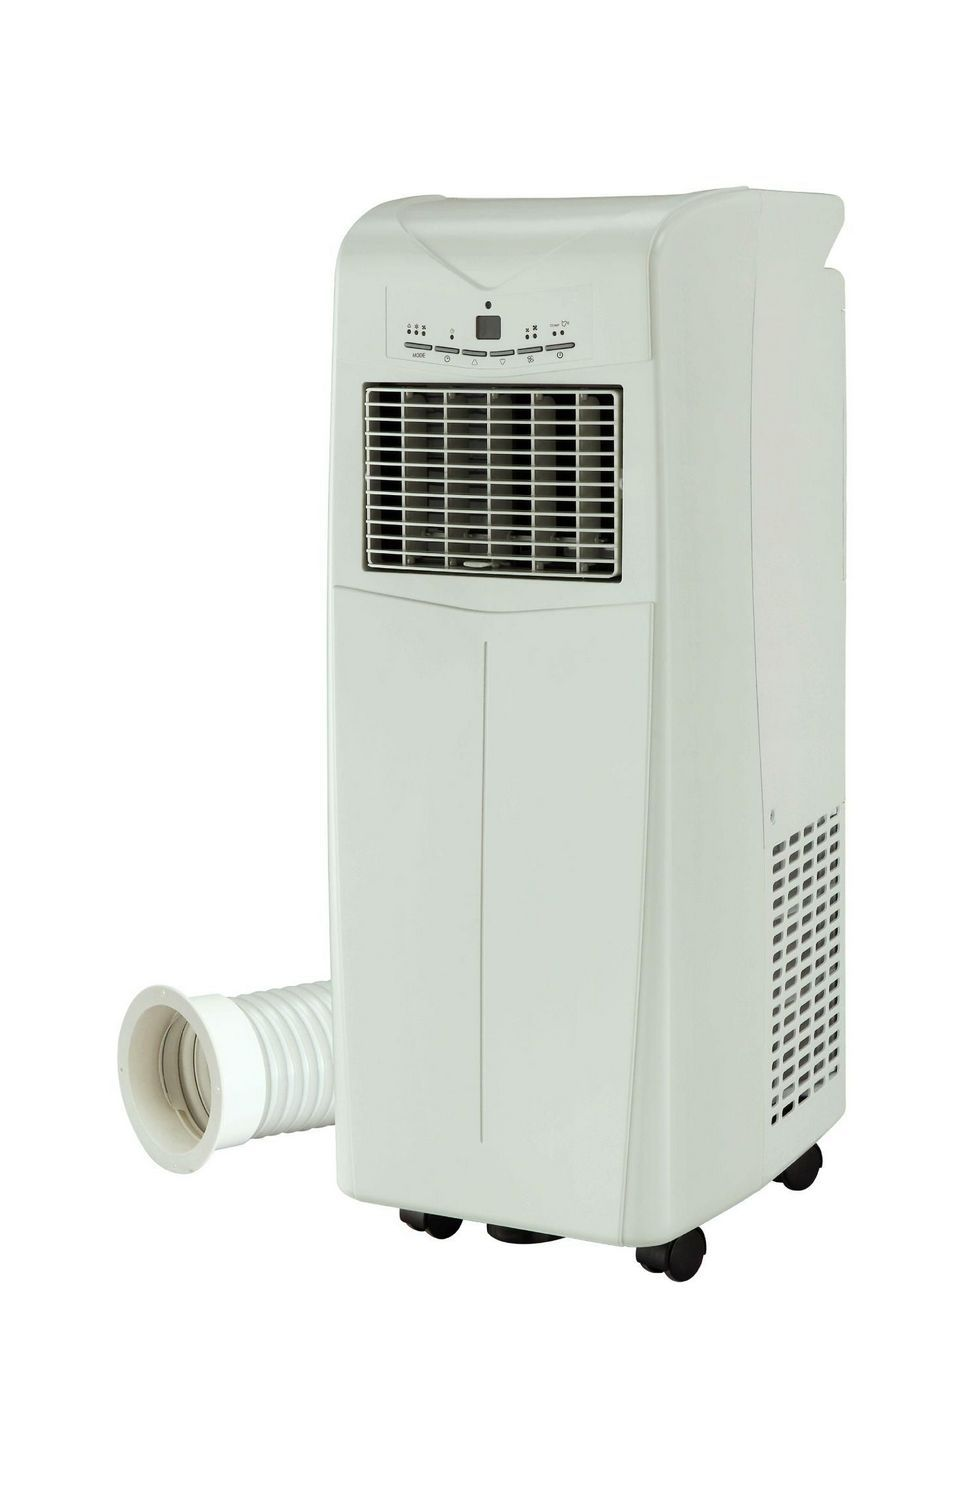 The Sharp Air Portabale Conditioner Unit With Tube Portable Air